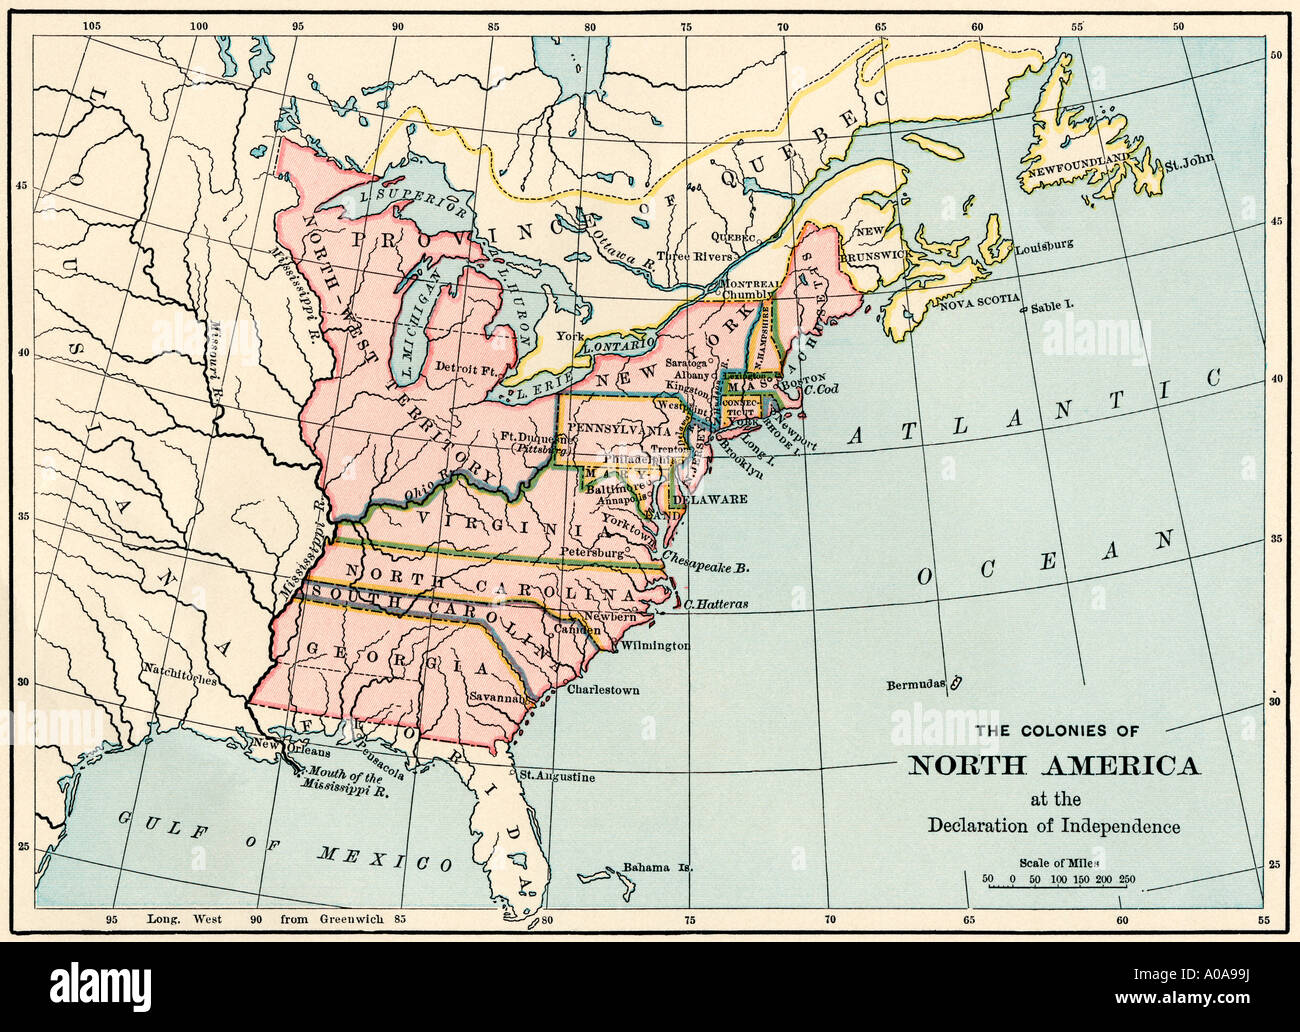 an introduction to the british colonies in north america The english colonists, meanwhile, just barely survived, suffering through   assembly convened, bringing limited self-government to america.